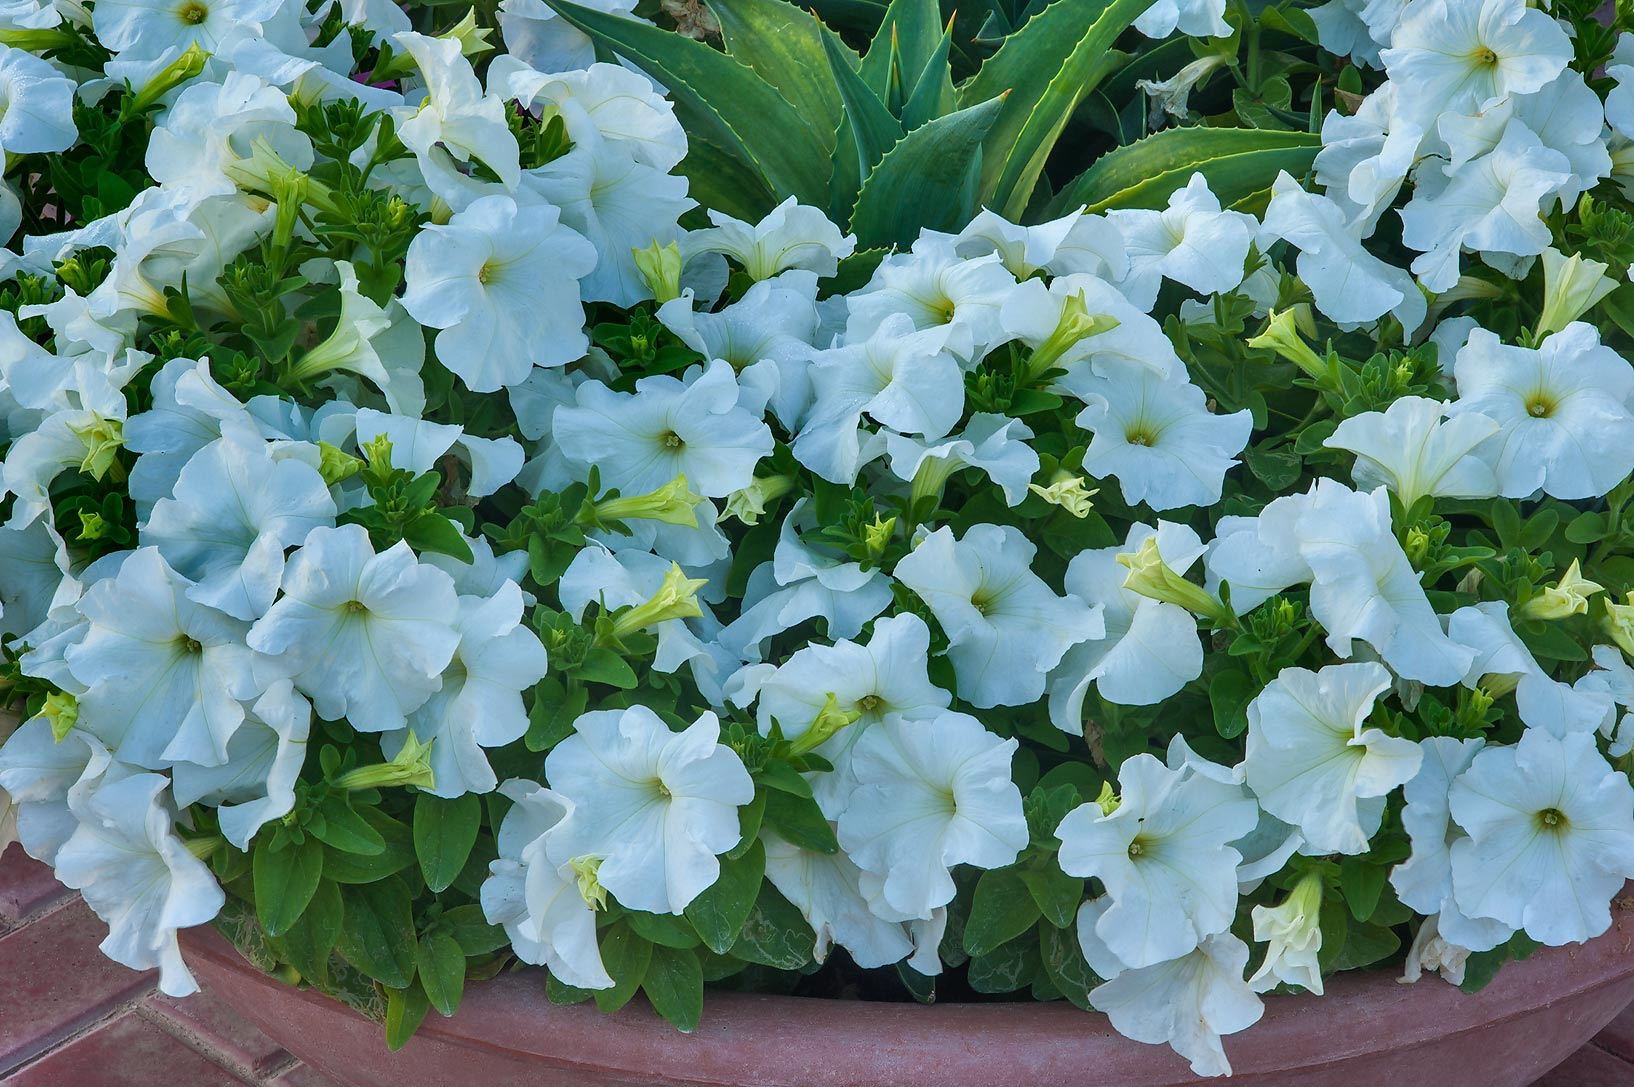 Photo 1755 24 White Petunia Flowers In A Park At Al Rafiei St In